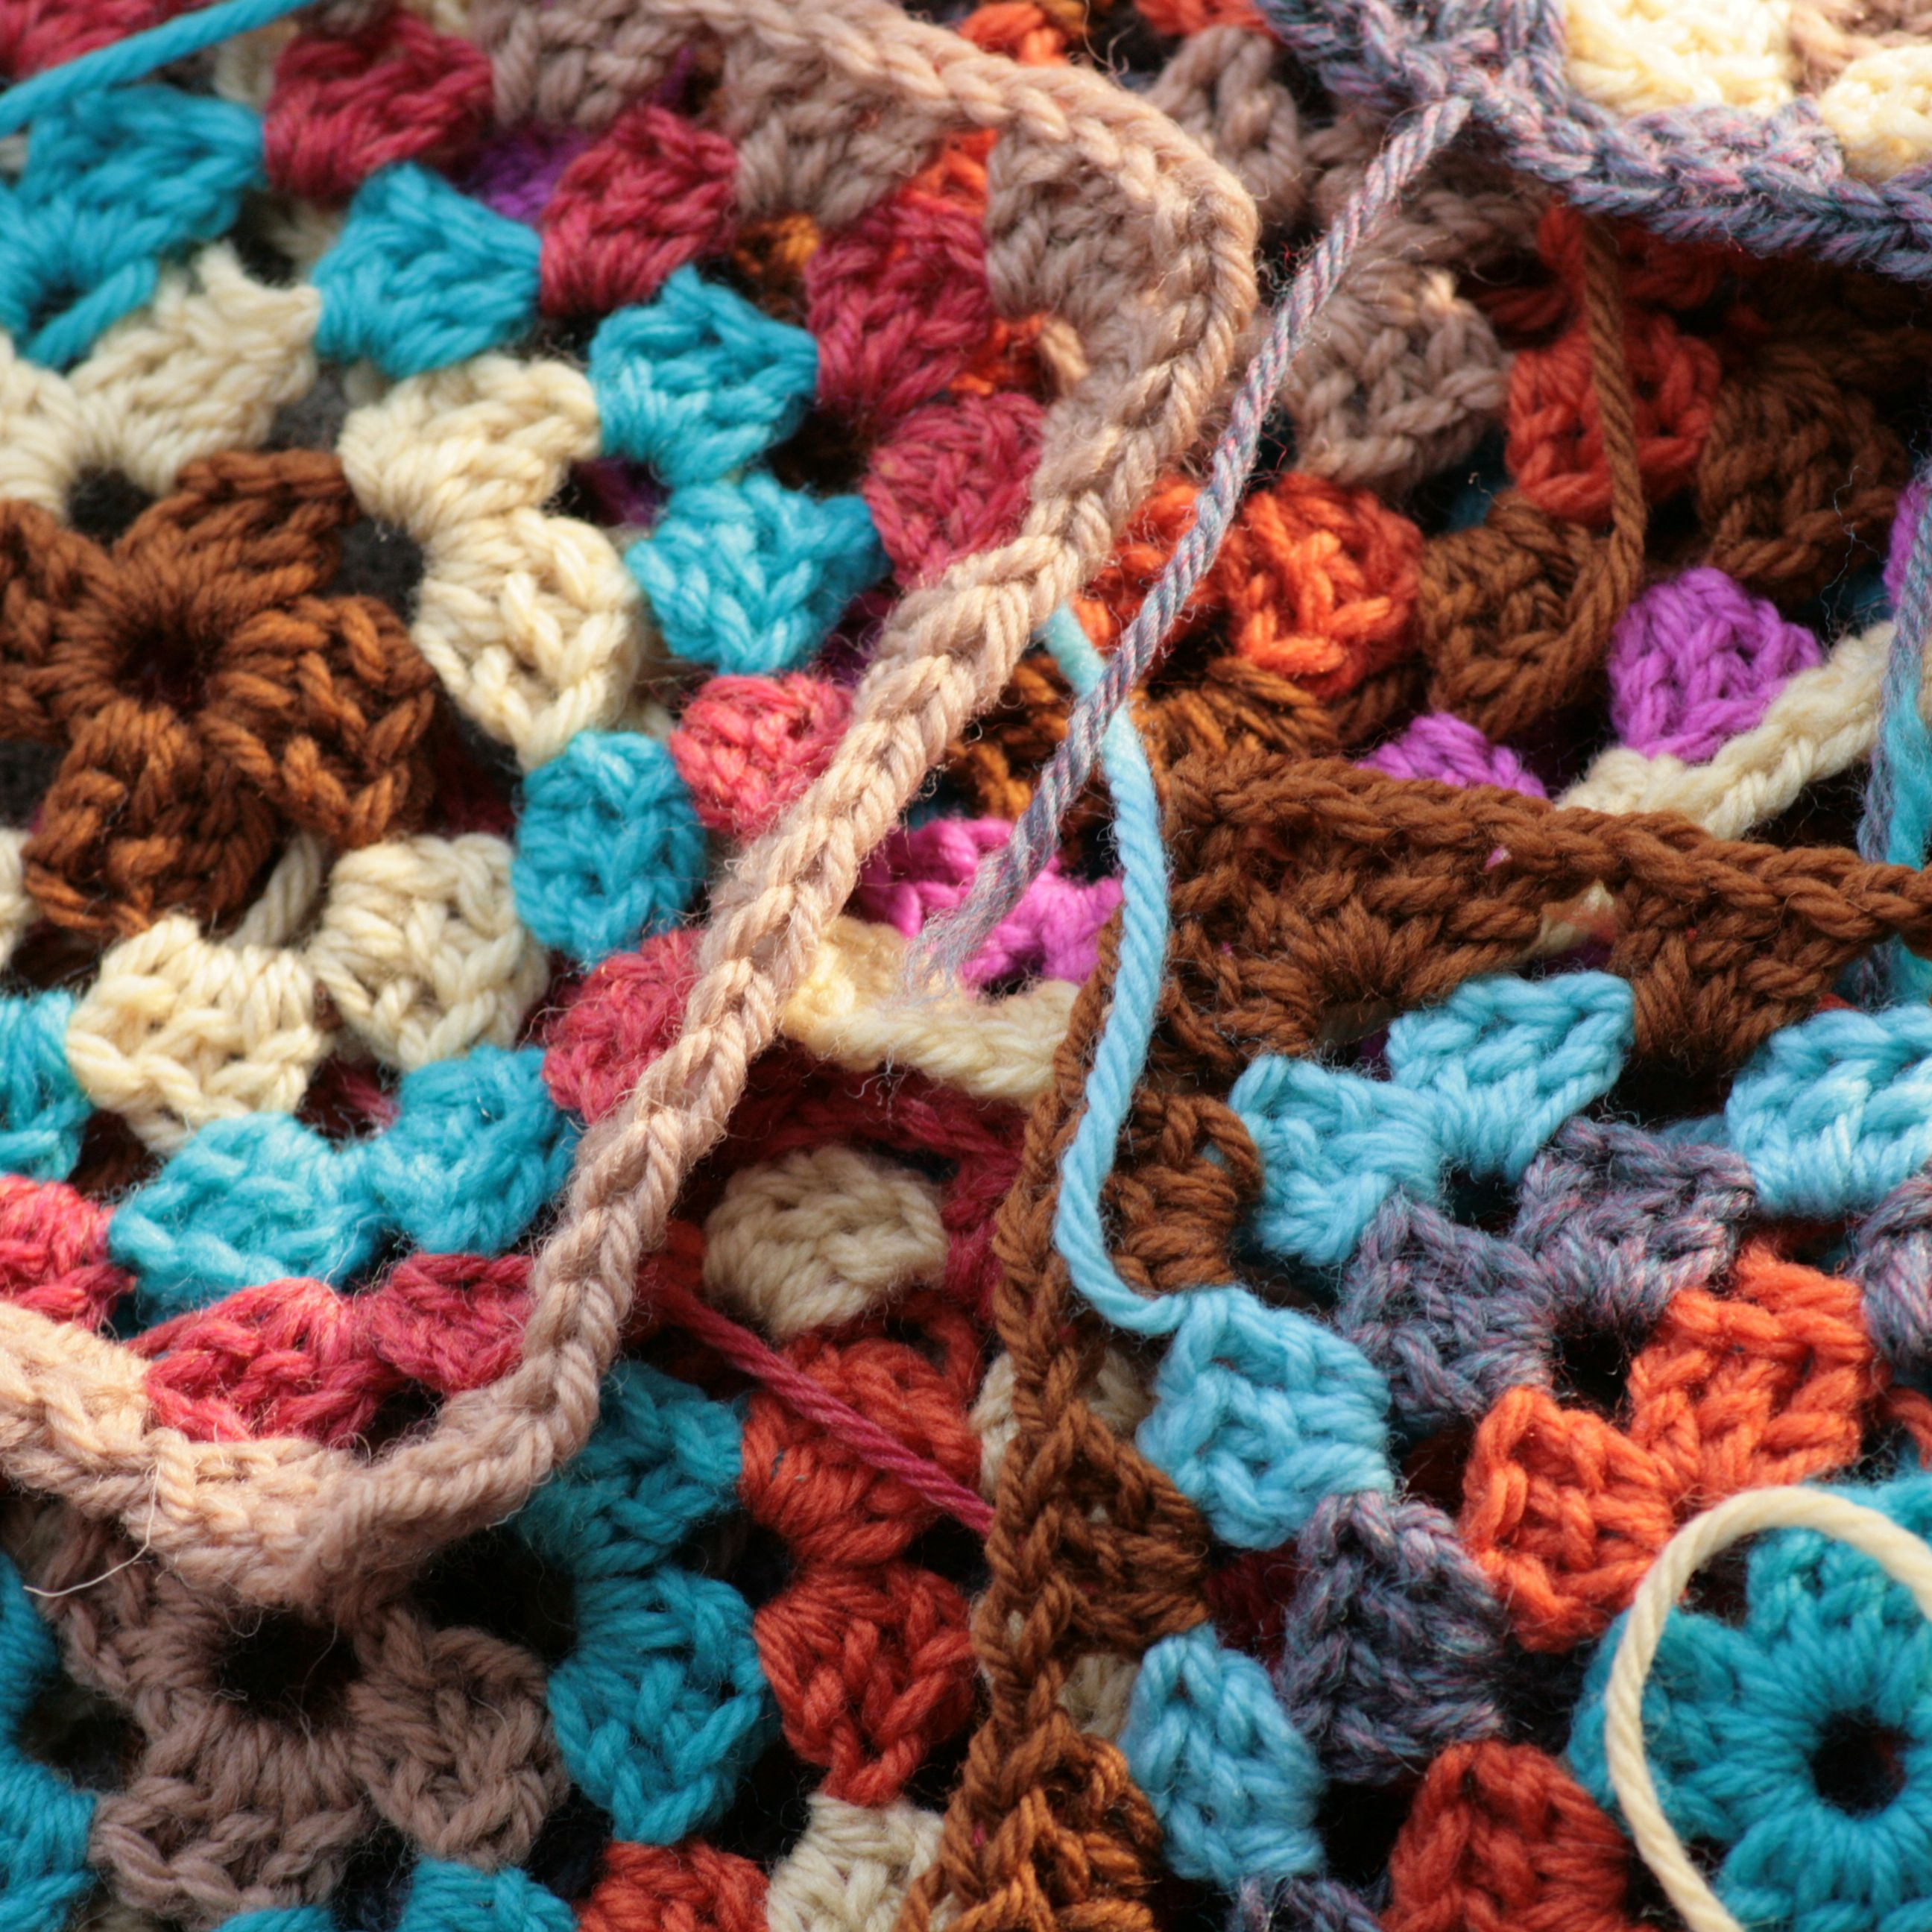 These Organizations Accept Crochet Donations